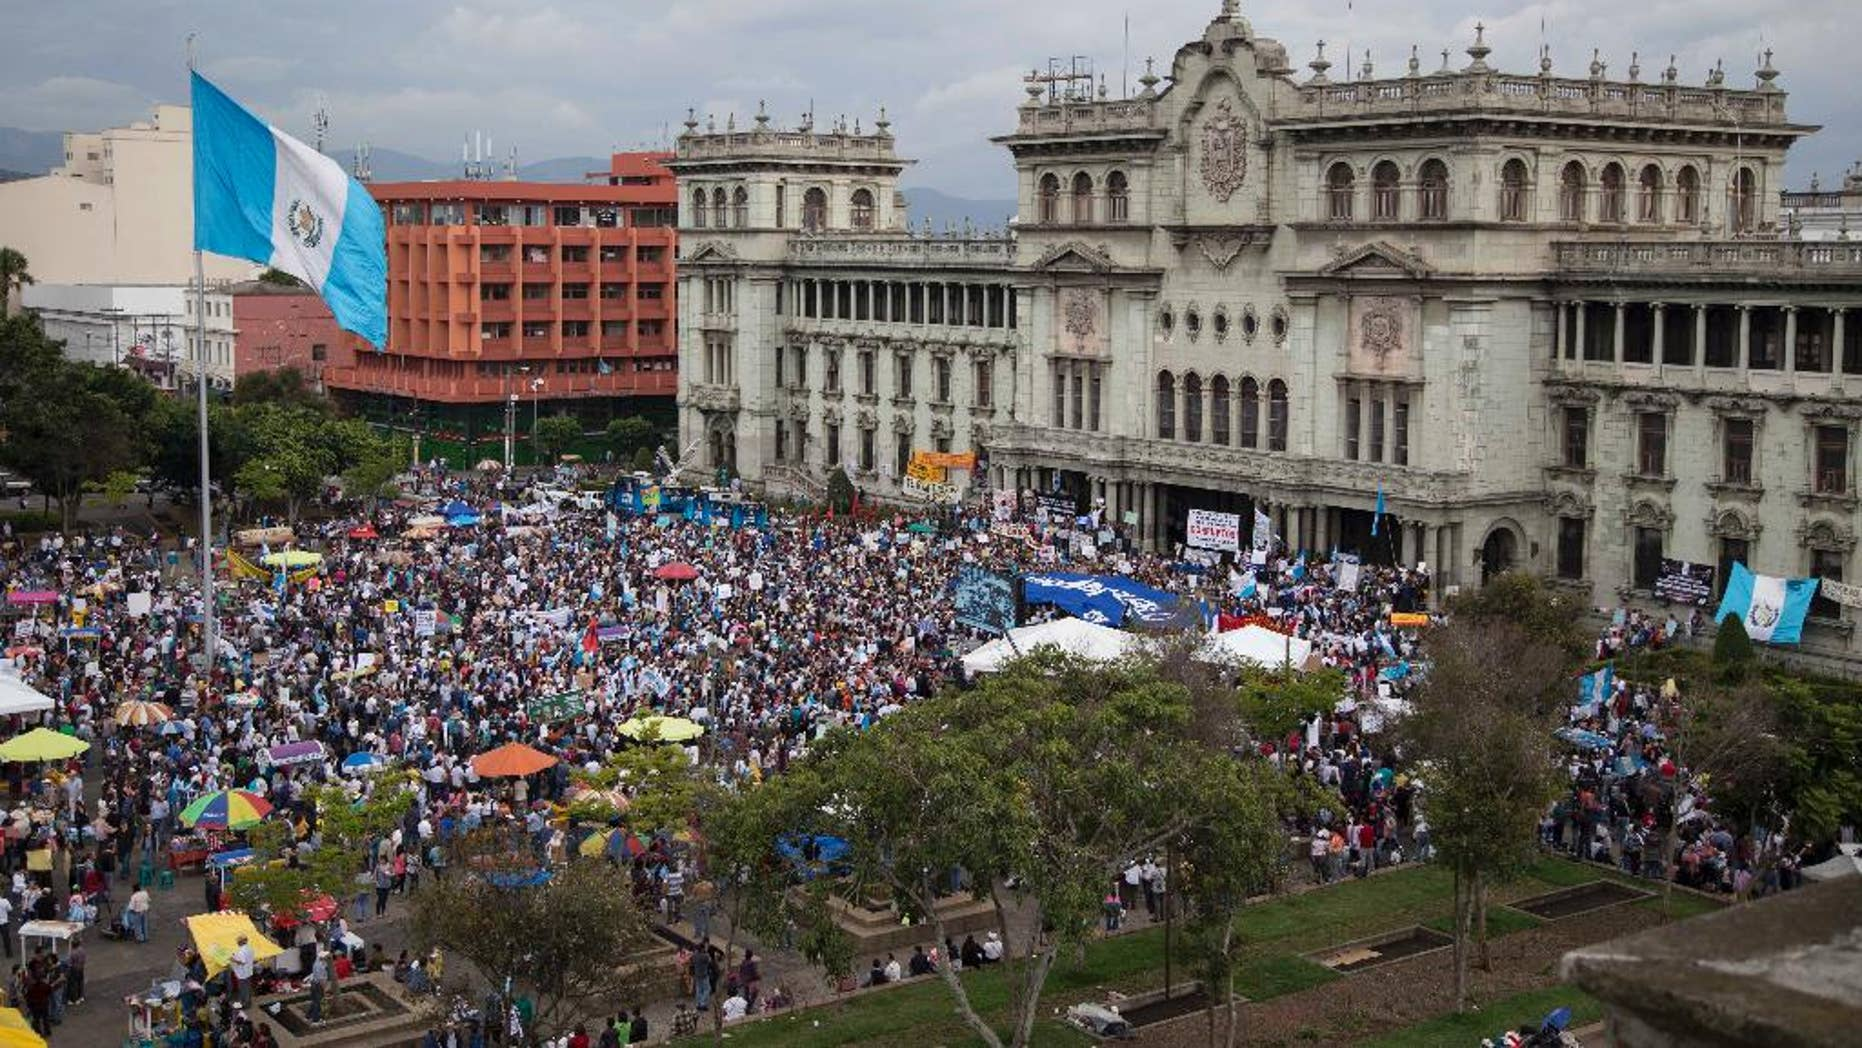 Demonstrators gather outside the National Palace demanding the resignation of Guatemala President Otto Perez Molina, in Guatemala City, Saturday, June 13, 2015. Guatemala's Supreme Court has given the go-ahead for congress to decide whether to remove Perez Molina's immunity from prosecution in a corruption scandal. (AP Photo/Luis Soto)